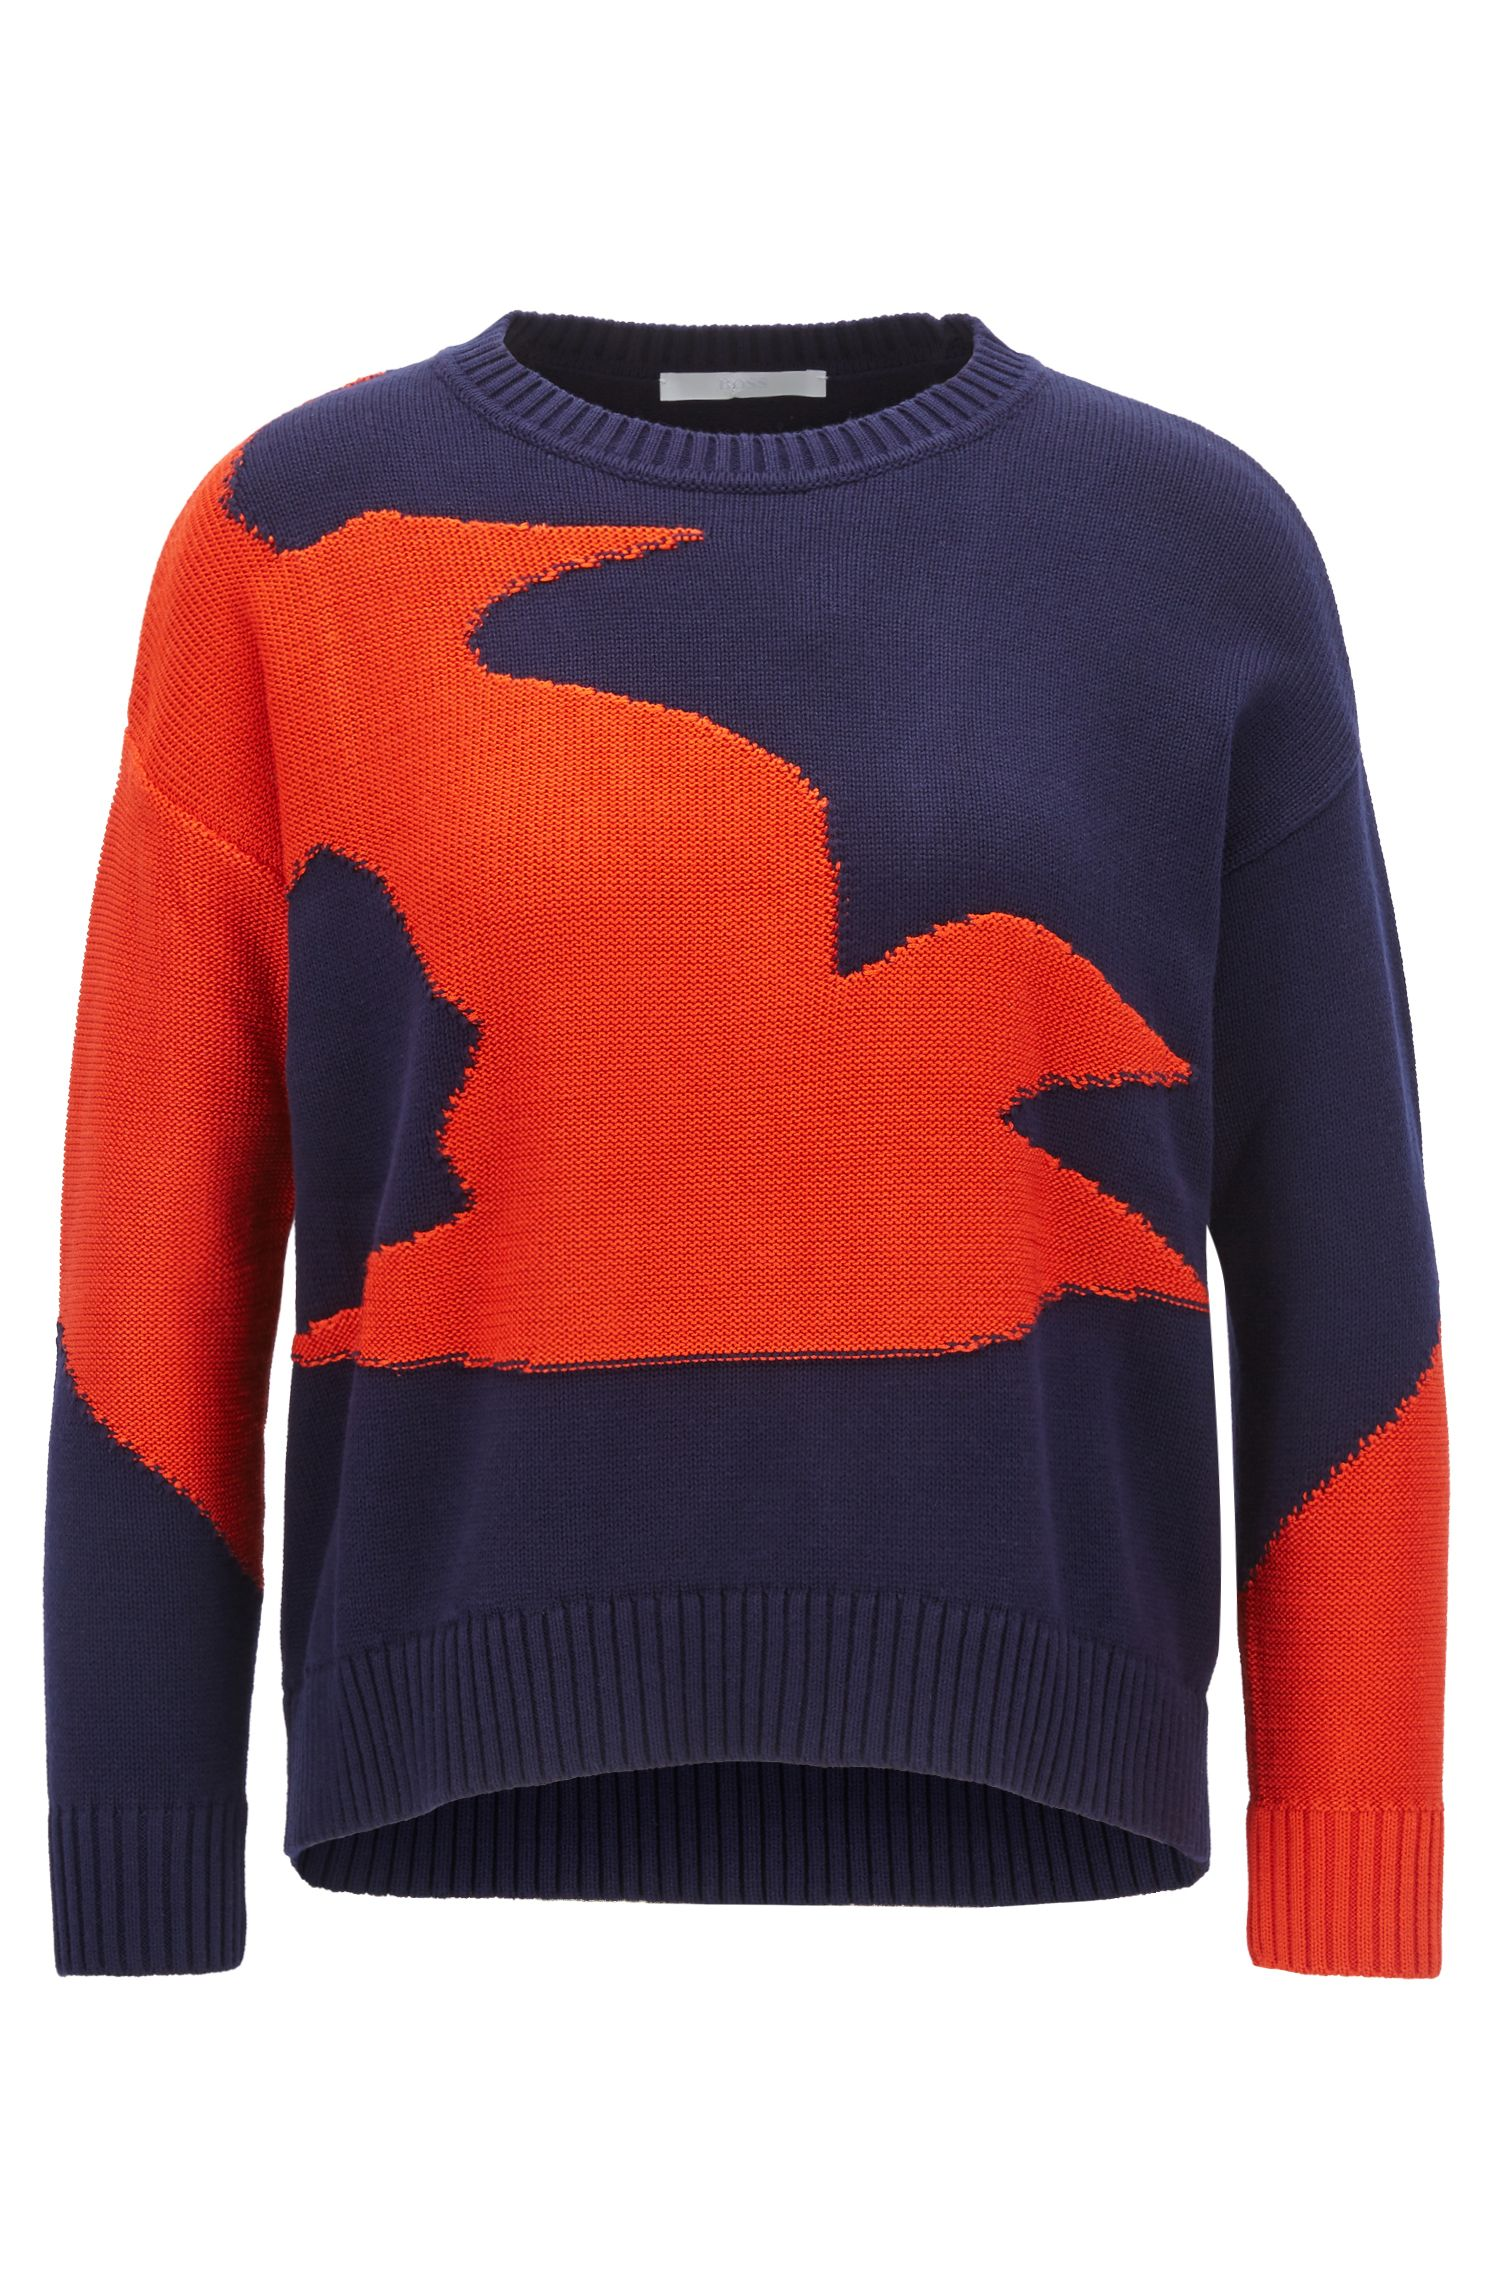 Cotton-blend sweater with seagull intarsia, Patterned